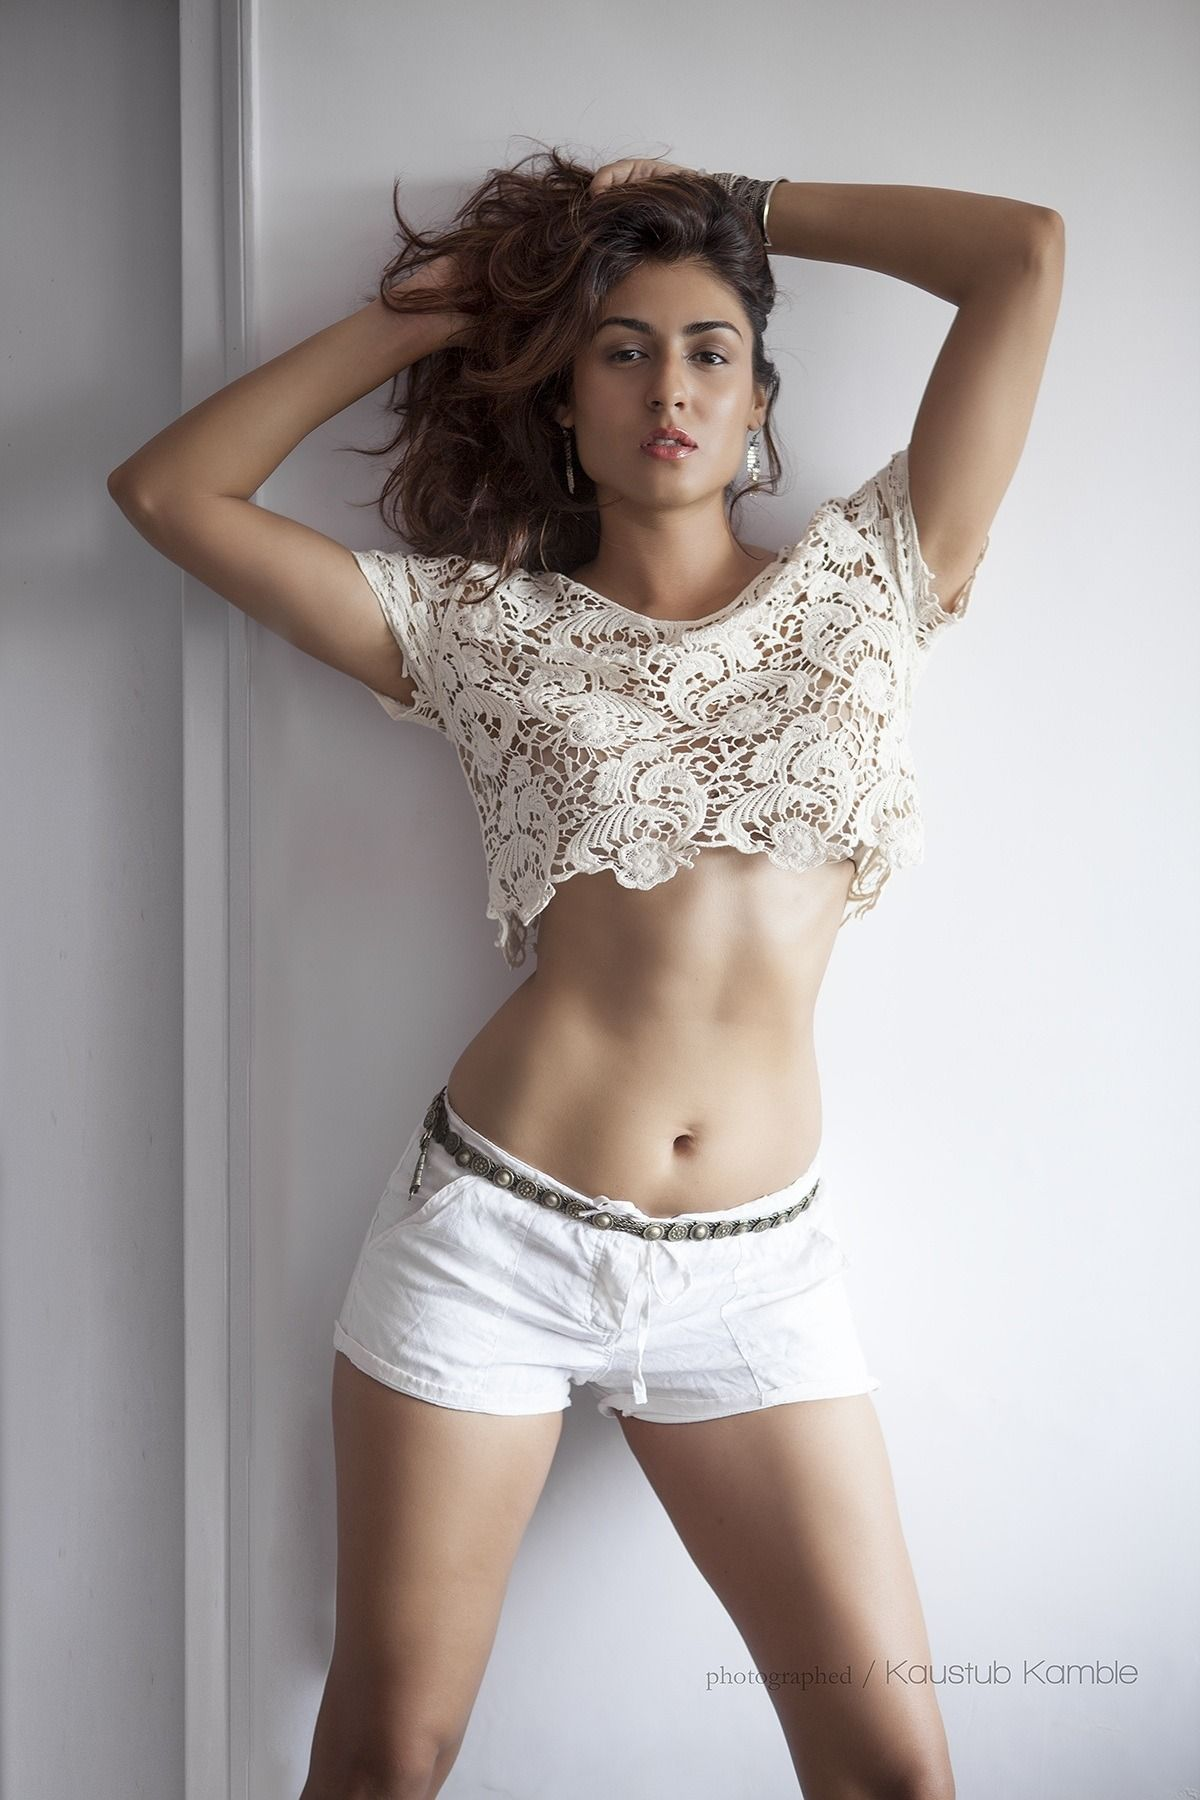 Tumblr Hot Indian Girls Amazing post anything (from anywhere!), customize everything, and find and